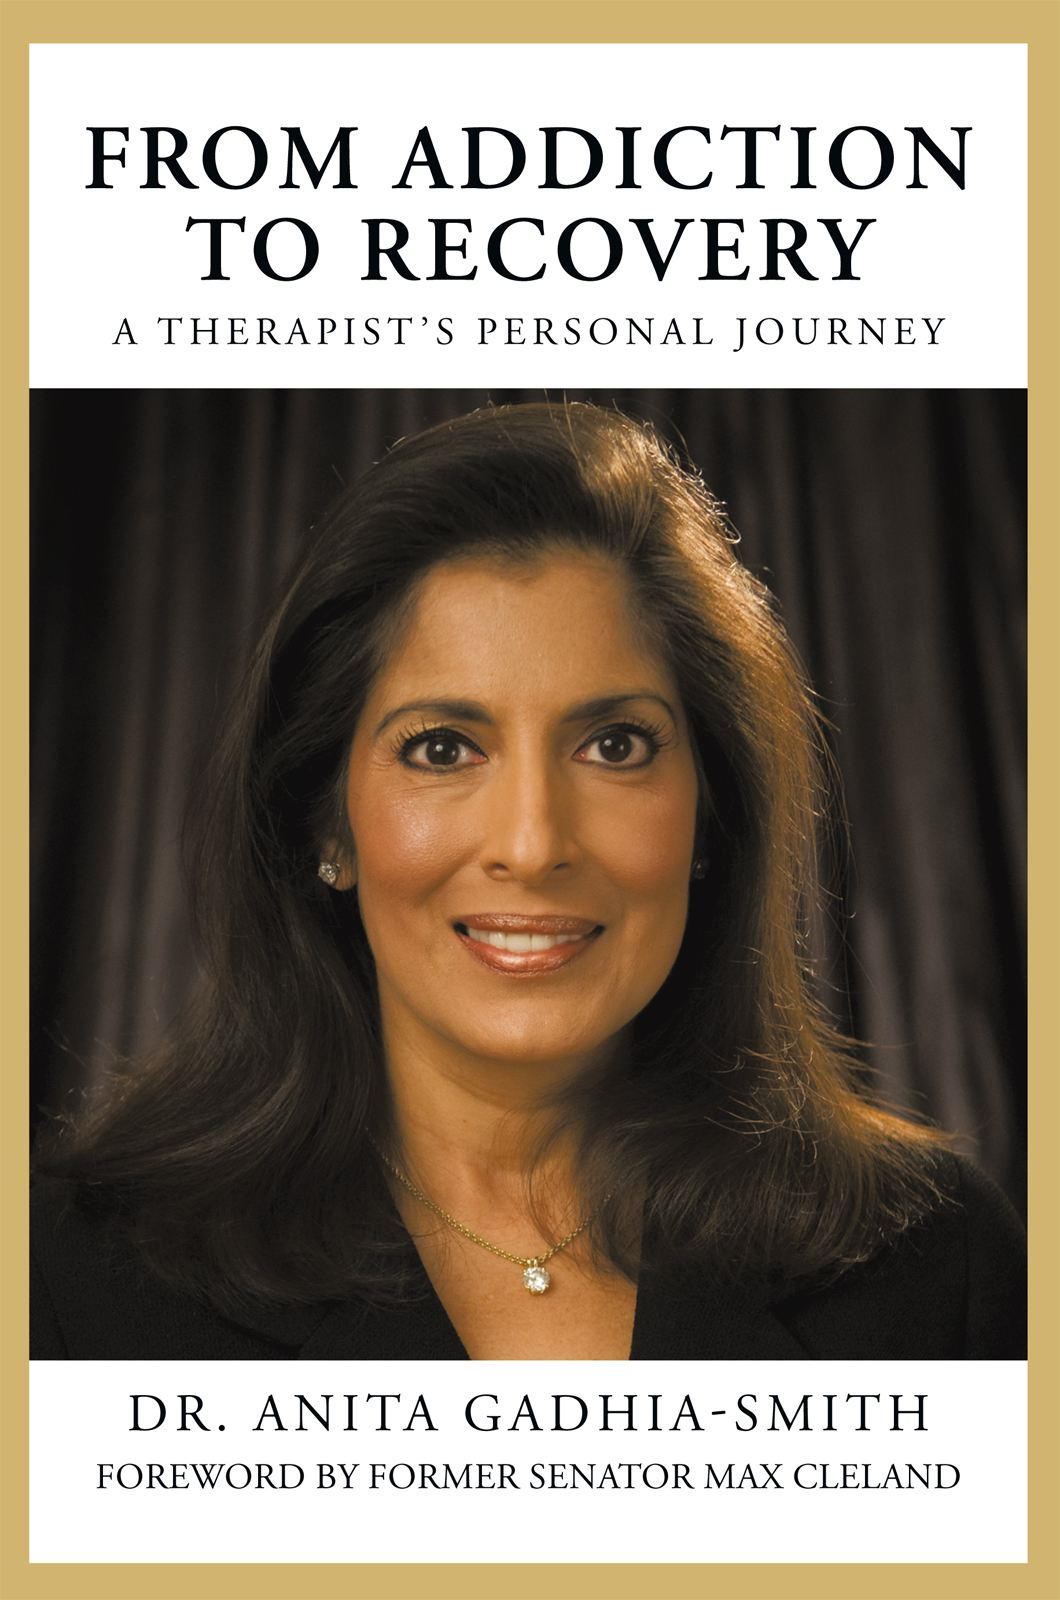 FROM ADDICTION TO RECOVERY By: Dr. Anita Gadhia-Smith